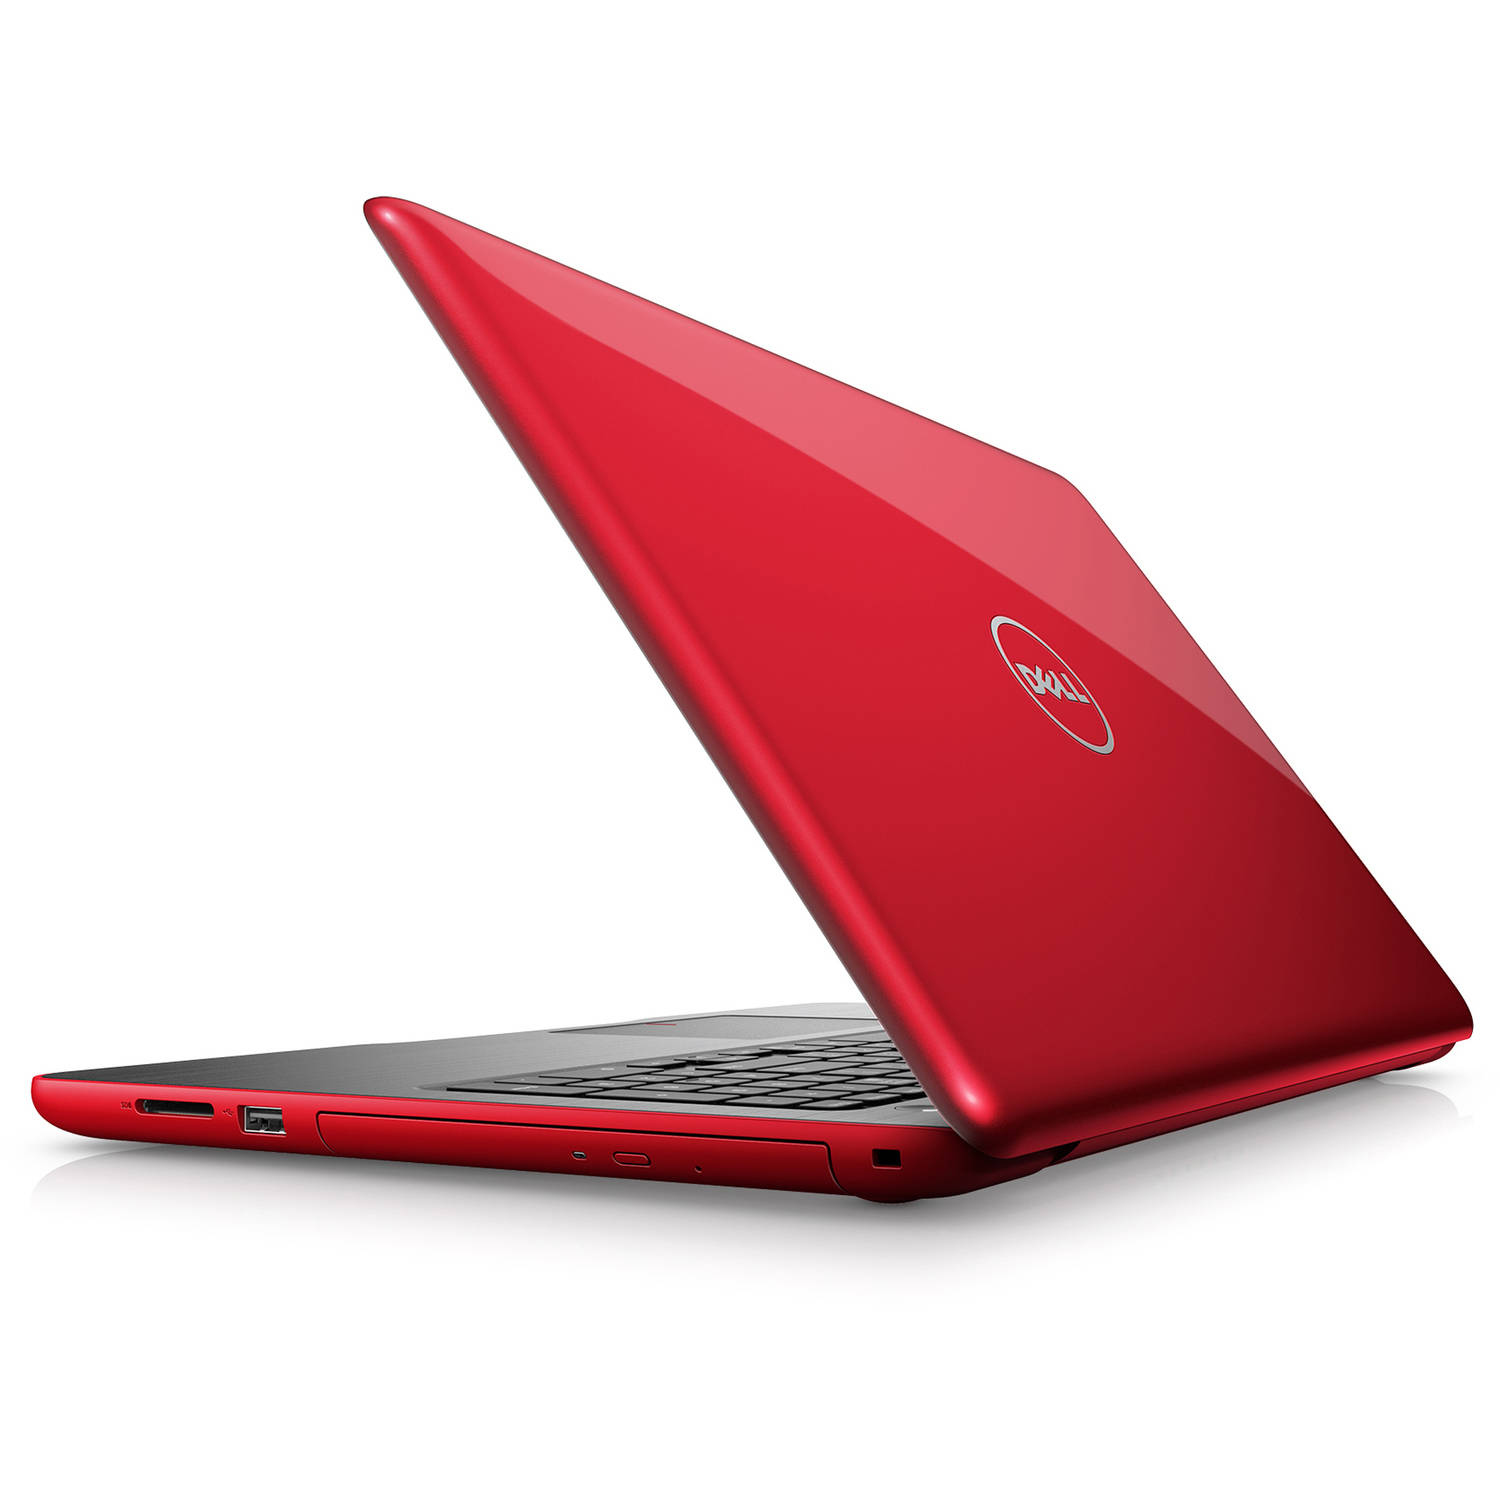 "Dell - Inspiron 15.6"" Laptop - AMD A9-- 8GB - AMD Radeon R5 Graphics - 1TB HD - Red"